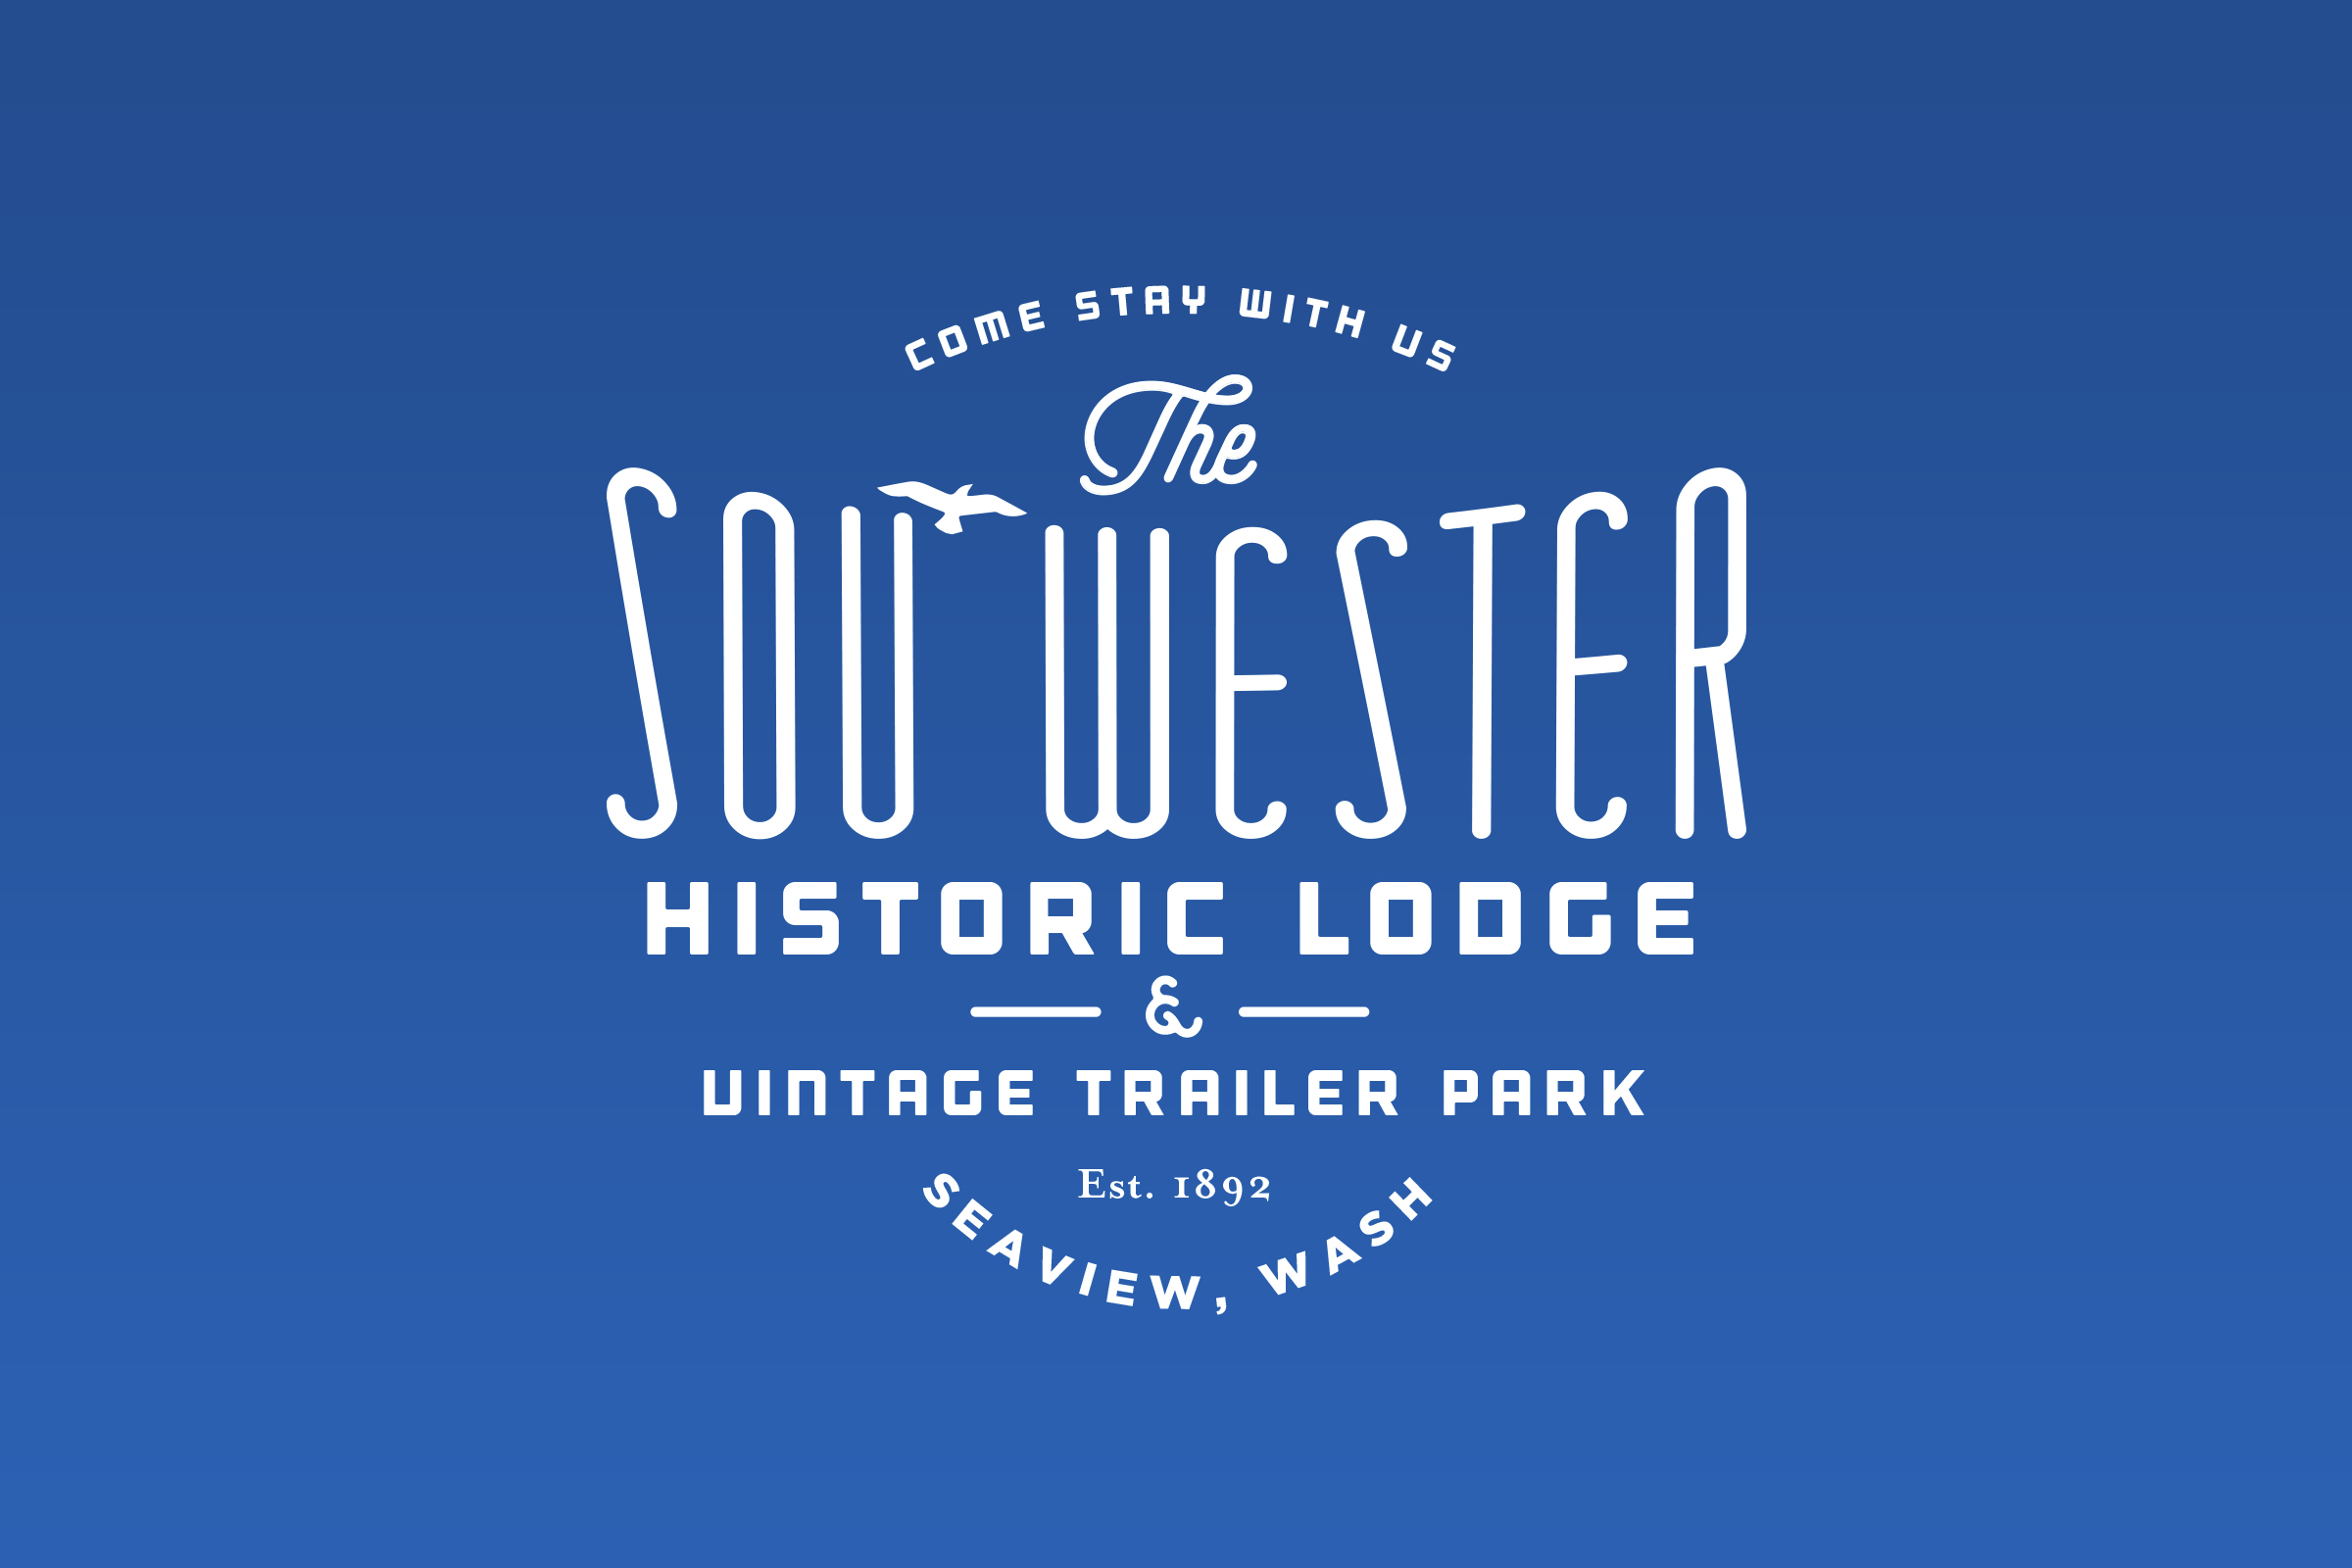 The Souwester logo